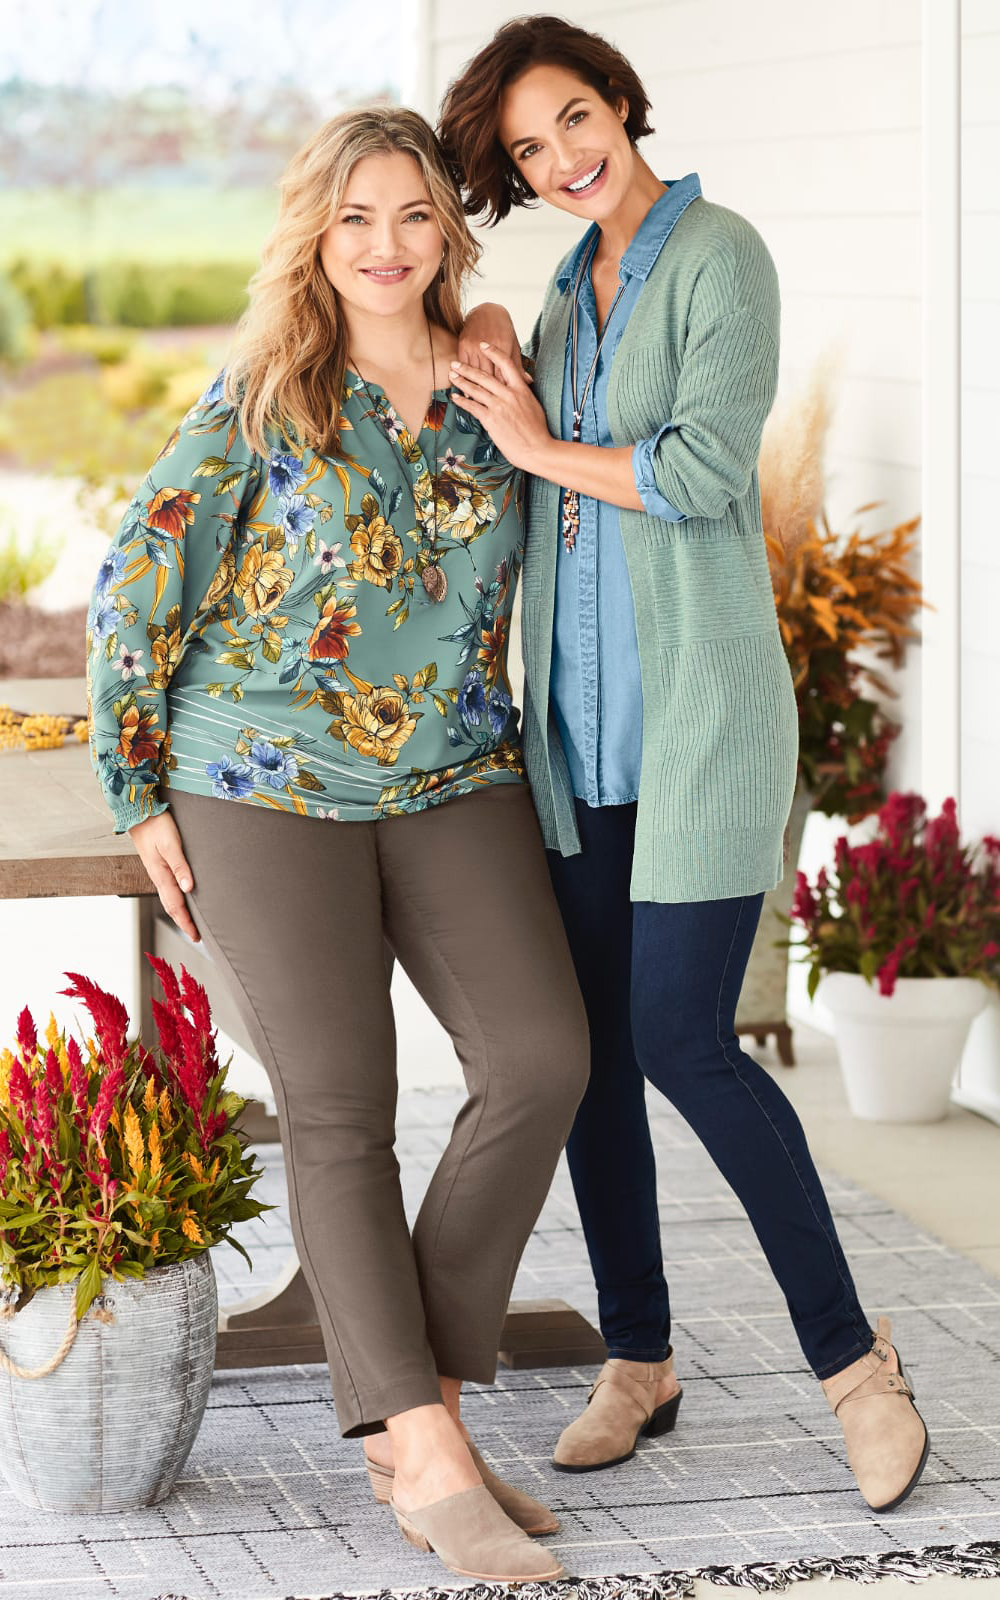 The Pioneer Woman Autumn Floral Outfit (combining the Floral Border Print Blouse, the Super Stretch Tapered Pant, the Chocolate Finish Leaf Earring, and the Long Chocolate Finish Leaf Pendant Necklace) and The Pioneer Woman Serene Blue Outfit (combining the Drapey Denim Tunic, the Ribbed Open Cardigan Sweater, Jean Legging, Wood Bead Cluster Earrings, and Long Corded Lariat Necklace).